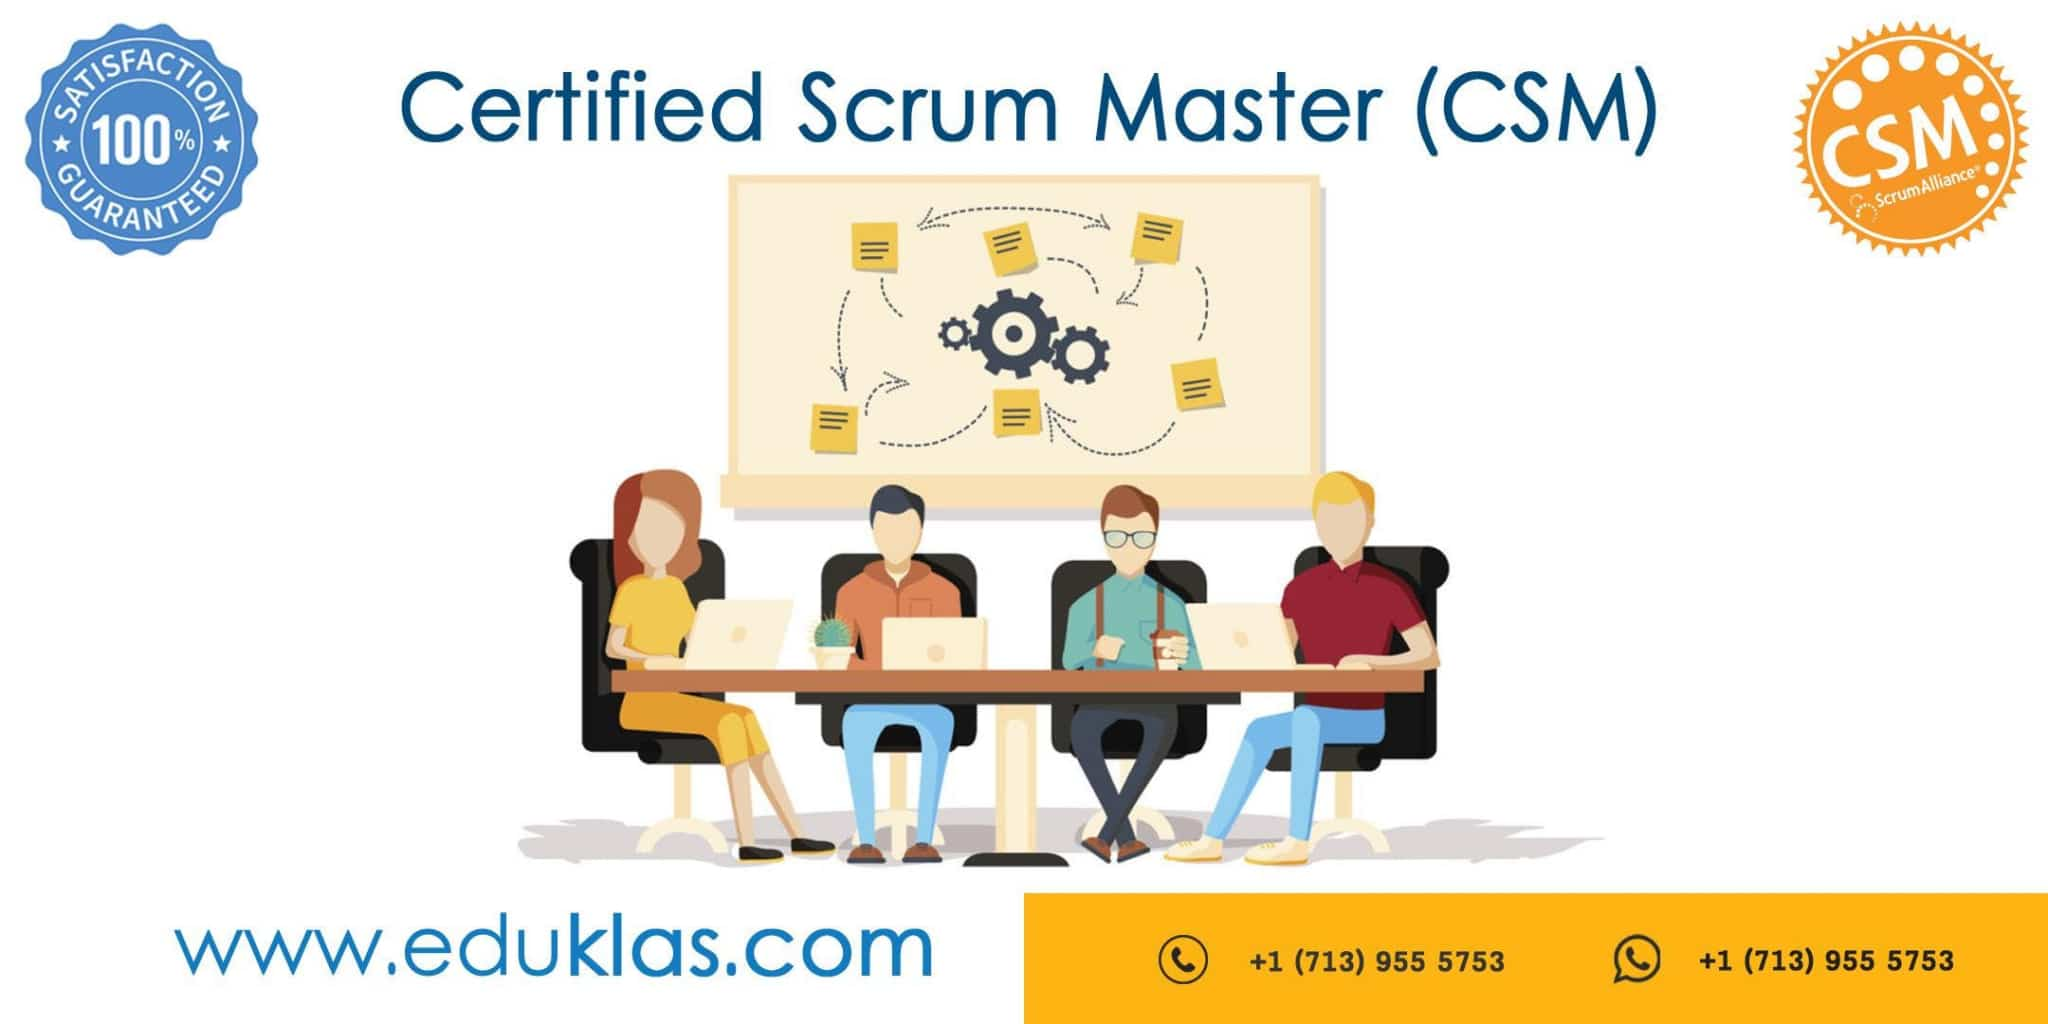 Scrum Master Certification Csm Training Csm Certification